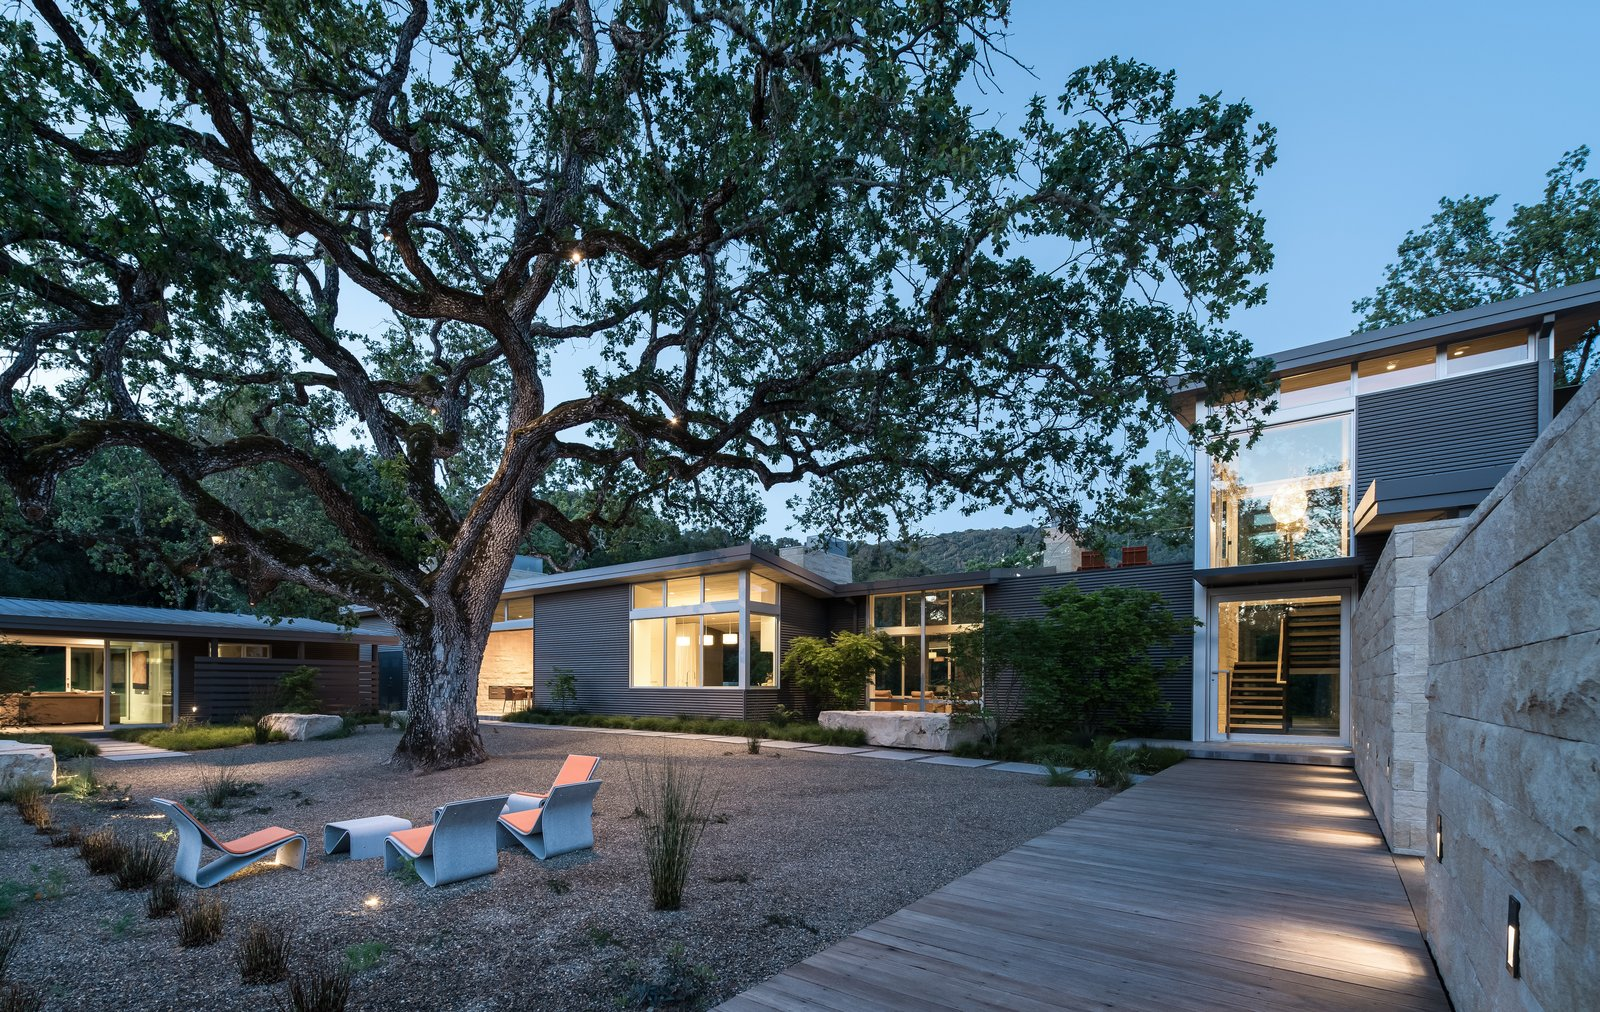 """""""The lone valley oak in some ways defined the shape of the house,"""" says landscape architect Bernard Trainor. The structure wraps around the century-old tree, forming a courtyard with a series of fiber-cement chairs by French designer Julia von Sponeck. Tagged: Outdoor, Back Yard, Side Yard, Front Yard, Trees, Landscape Lighting, and Shrubs.  Photo 5 of 6 in 8 Inspirational Quotes to Stay Innovative from A Meadow With Amenities"""